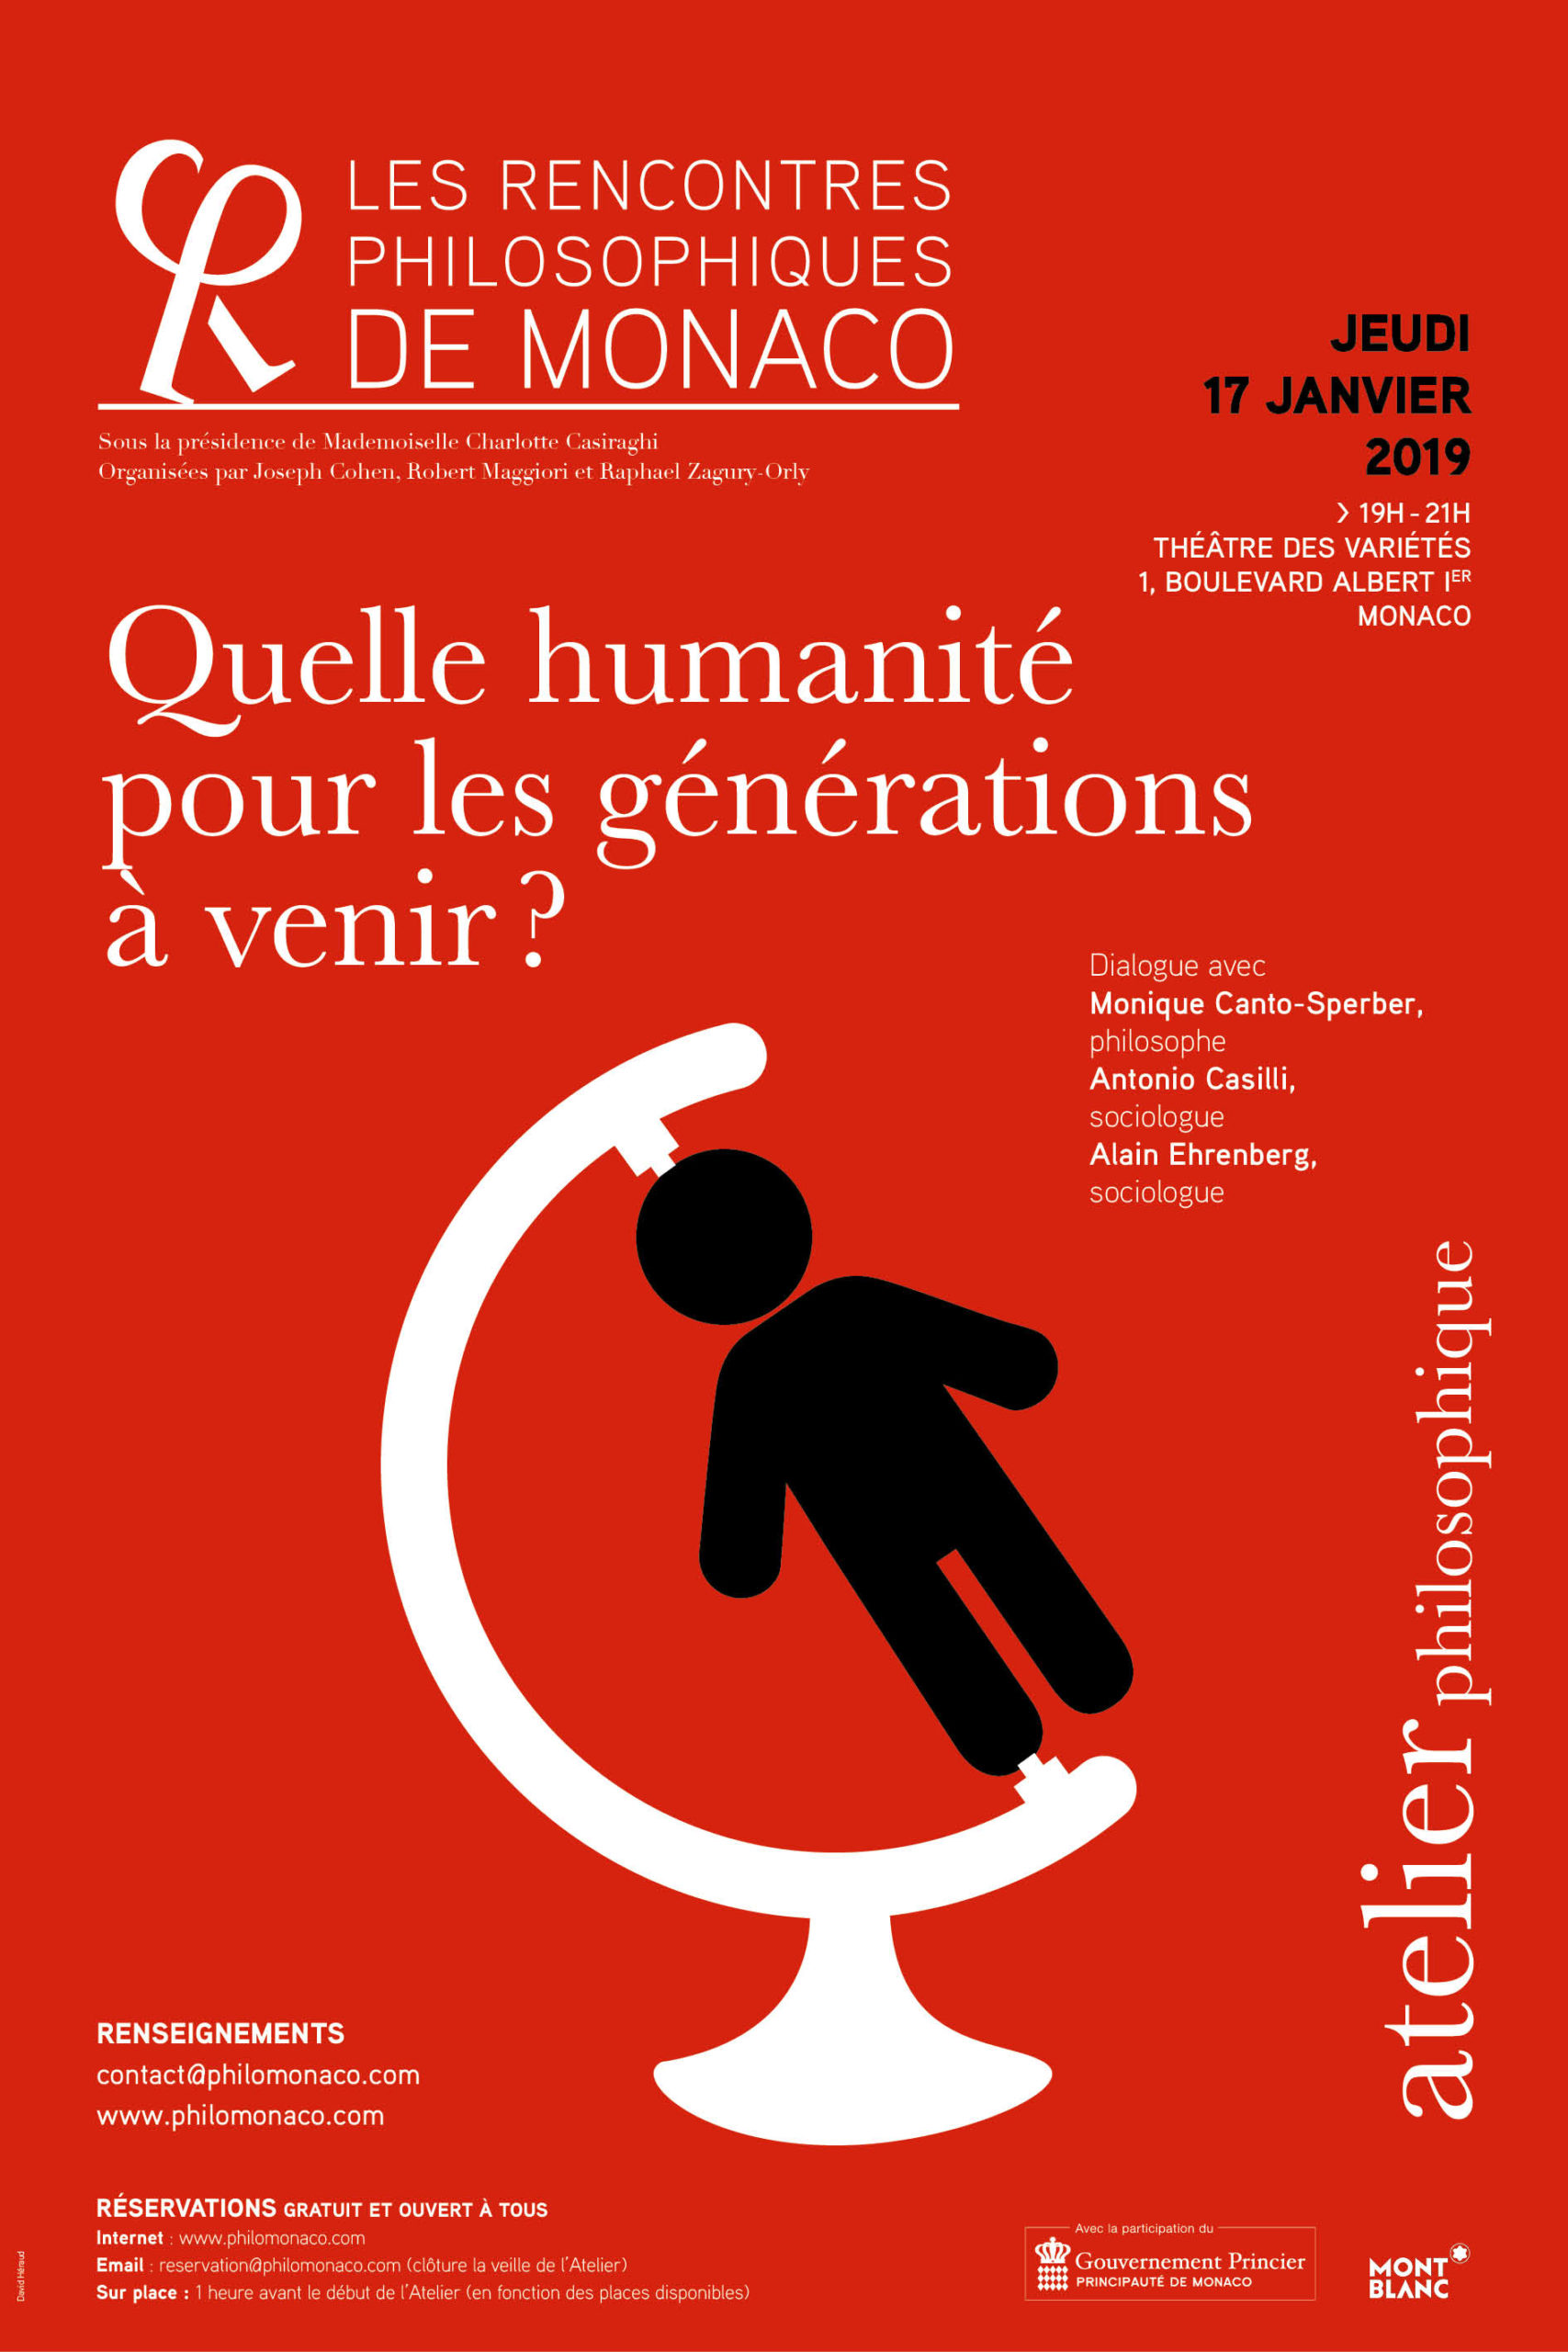 4911, 4911, Quelle humanité, quelle-humanite-scaled.jpg, 411053, https://philomonaco.com/wp-content/uploads/2018/09/quelle-humanite-scaled.jpg, https://philomonaco.com/atelier/quelles-humanites-pour-les-generations-futures/quelle-humanite/, , 2, , , quelle-humanite, inherit, 4842, 2018-09-12 07:51:22, 2018-09-12 07:53:51, 0, image/jpeg, image, jpeg, https://philomonaco.com/wp-includes/images/media/default.png, 1890, 2835, Array